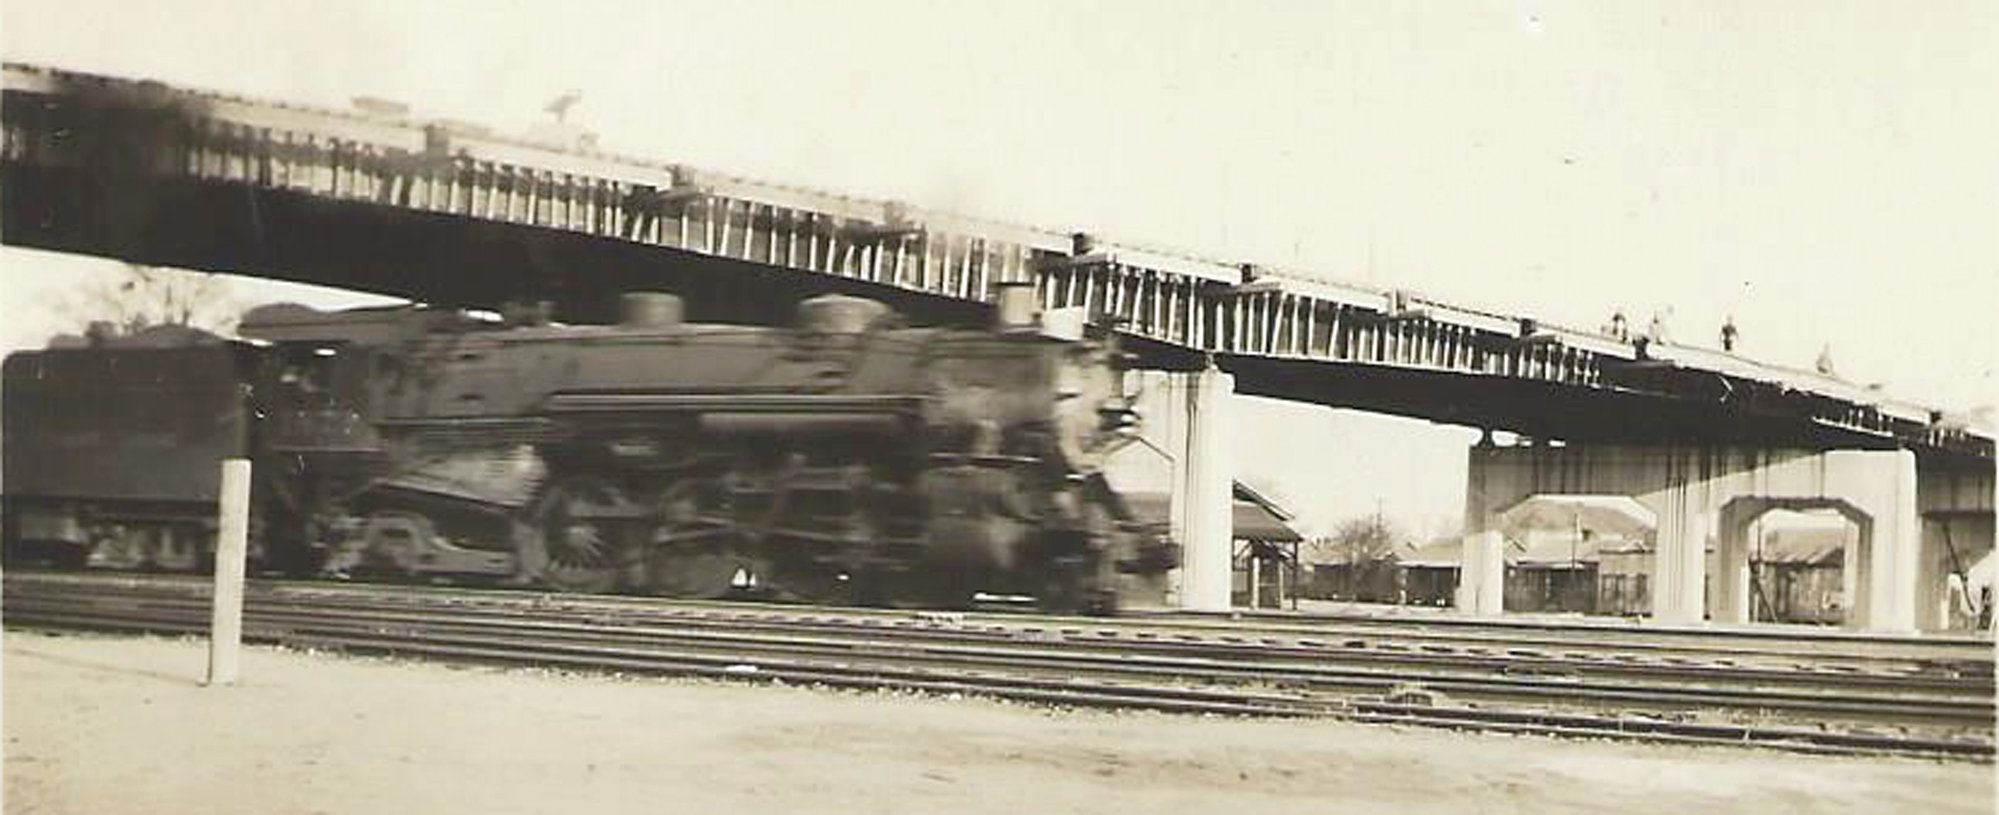 A train passes underneath the Manning Avenue bridge over the railroad yard.